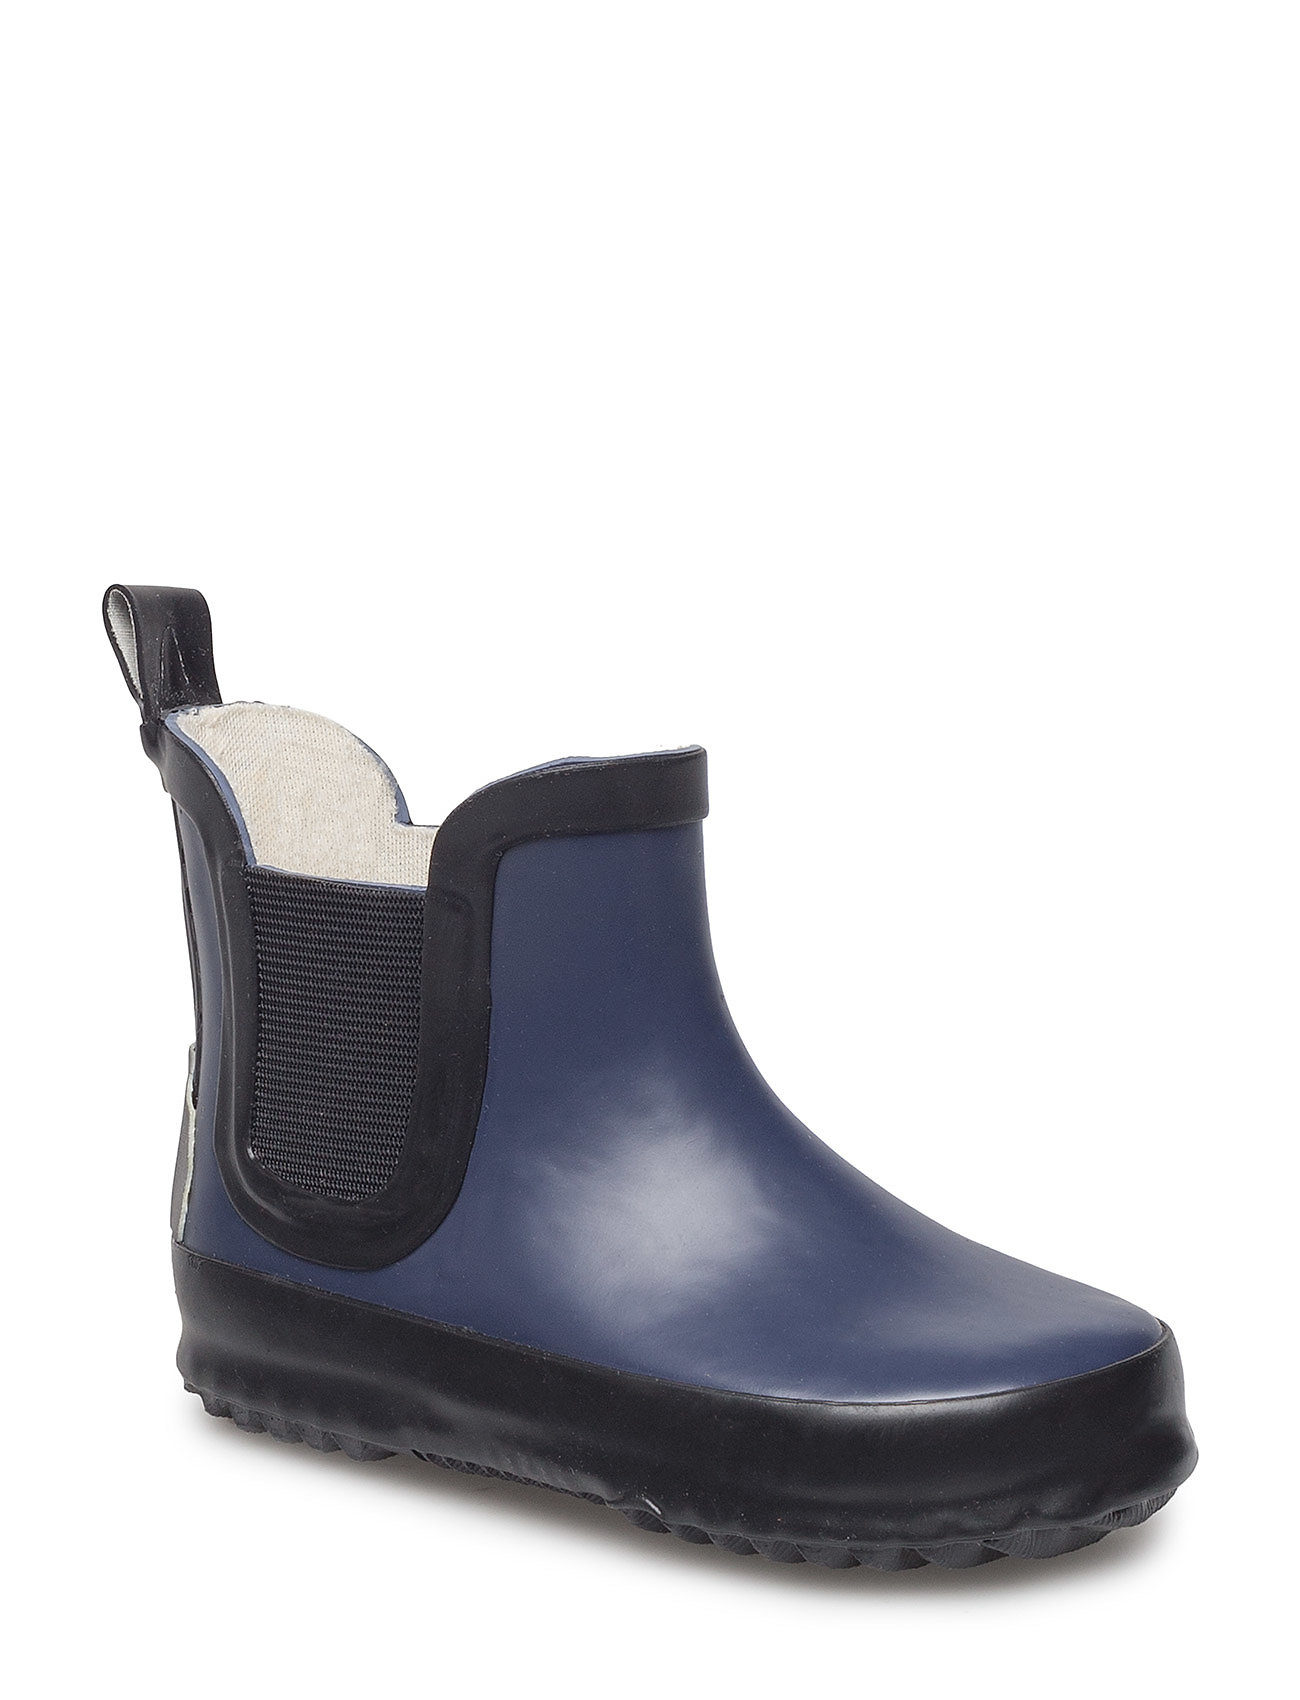 Image of Short Wellies Gummistøvler Blå Mikk-Line (2987797515)